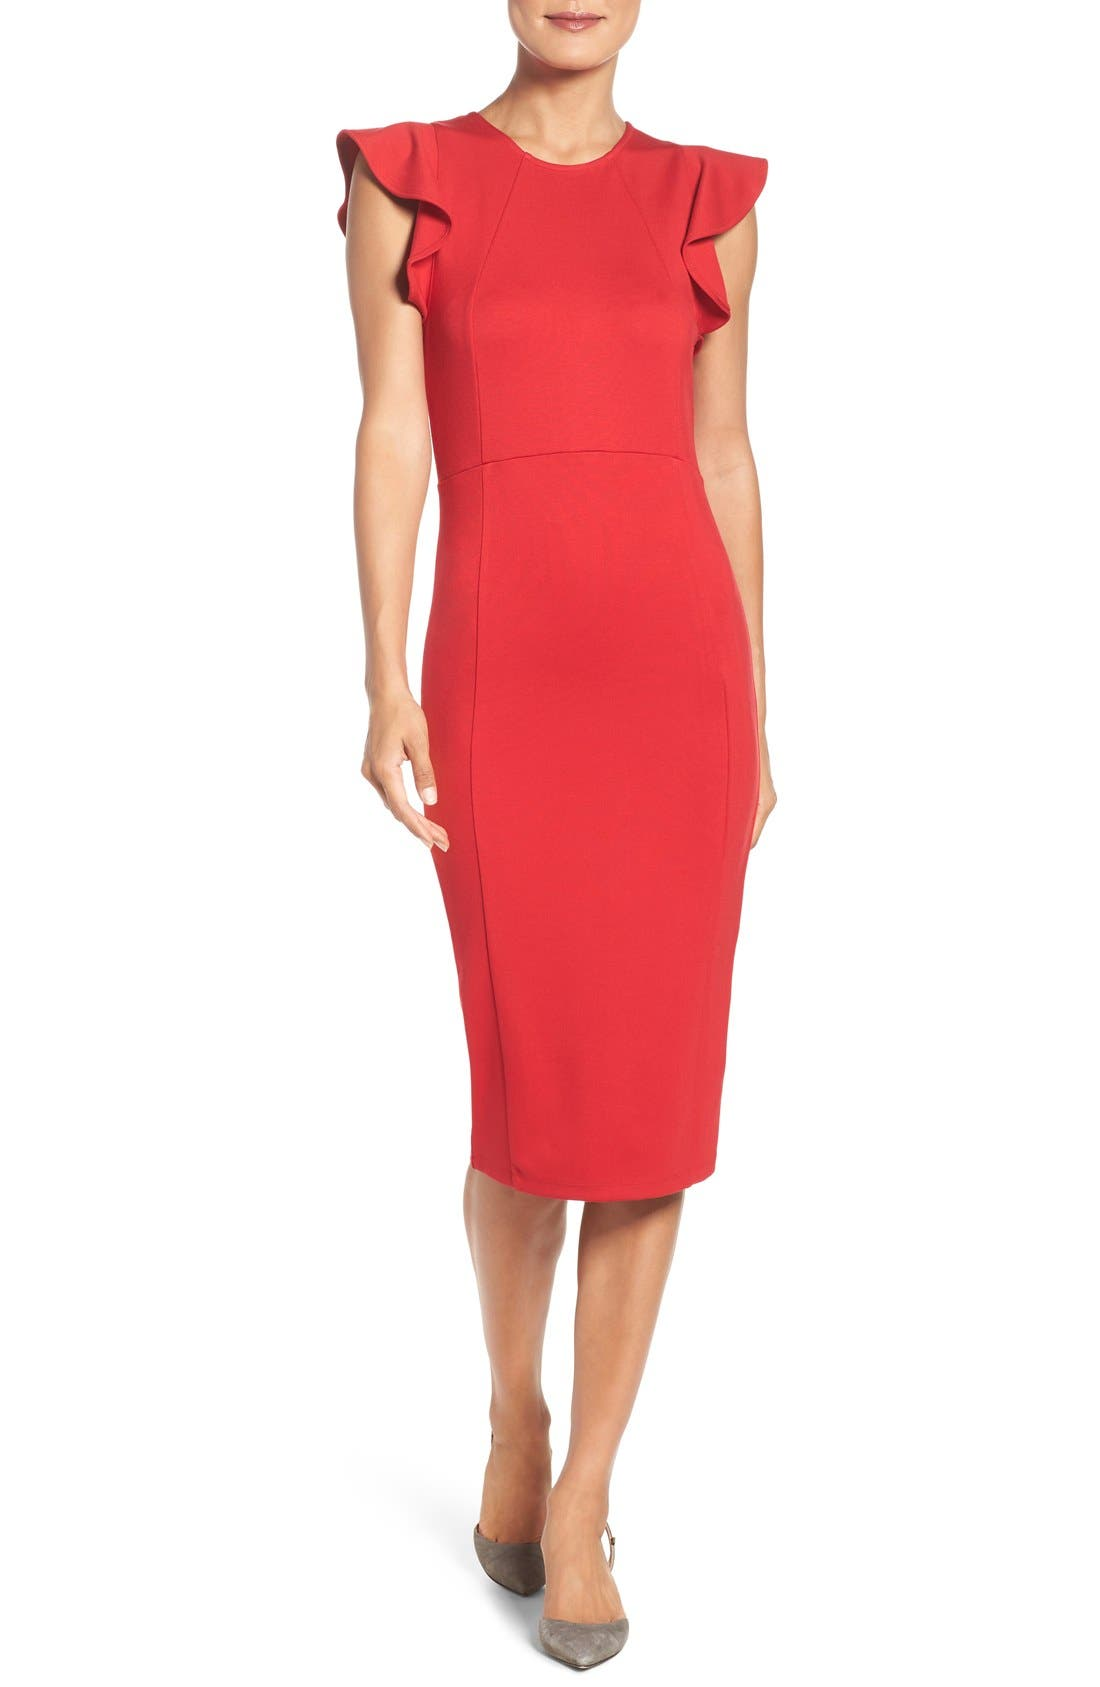 Felicity & Coco Ruffle Sheath Dress (Nordstrom Exclusive)